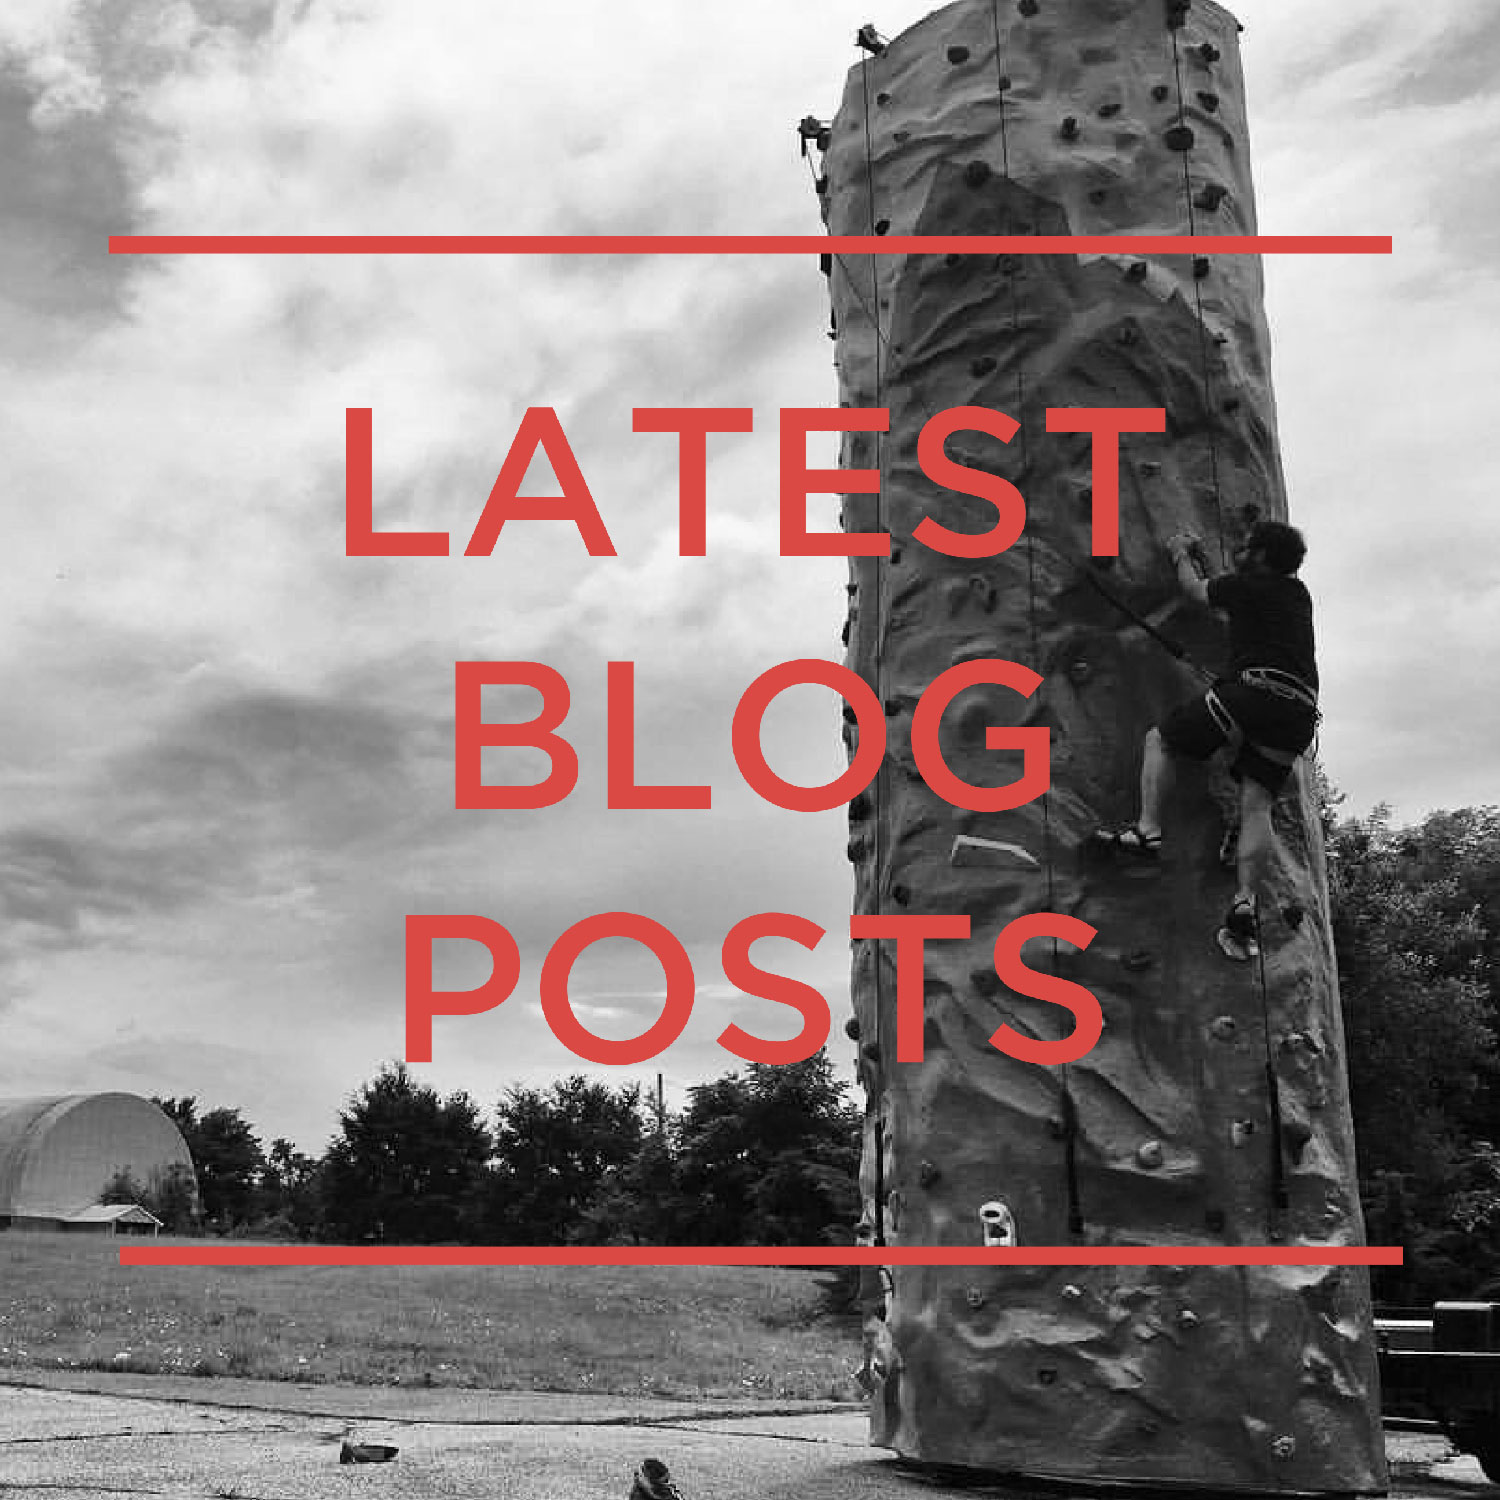 READ OUR LATEST BLOG POSTS